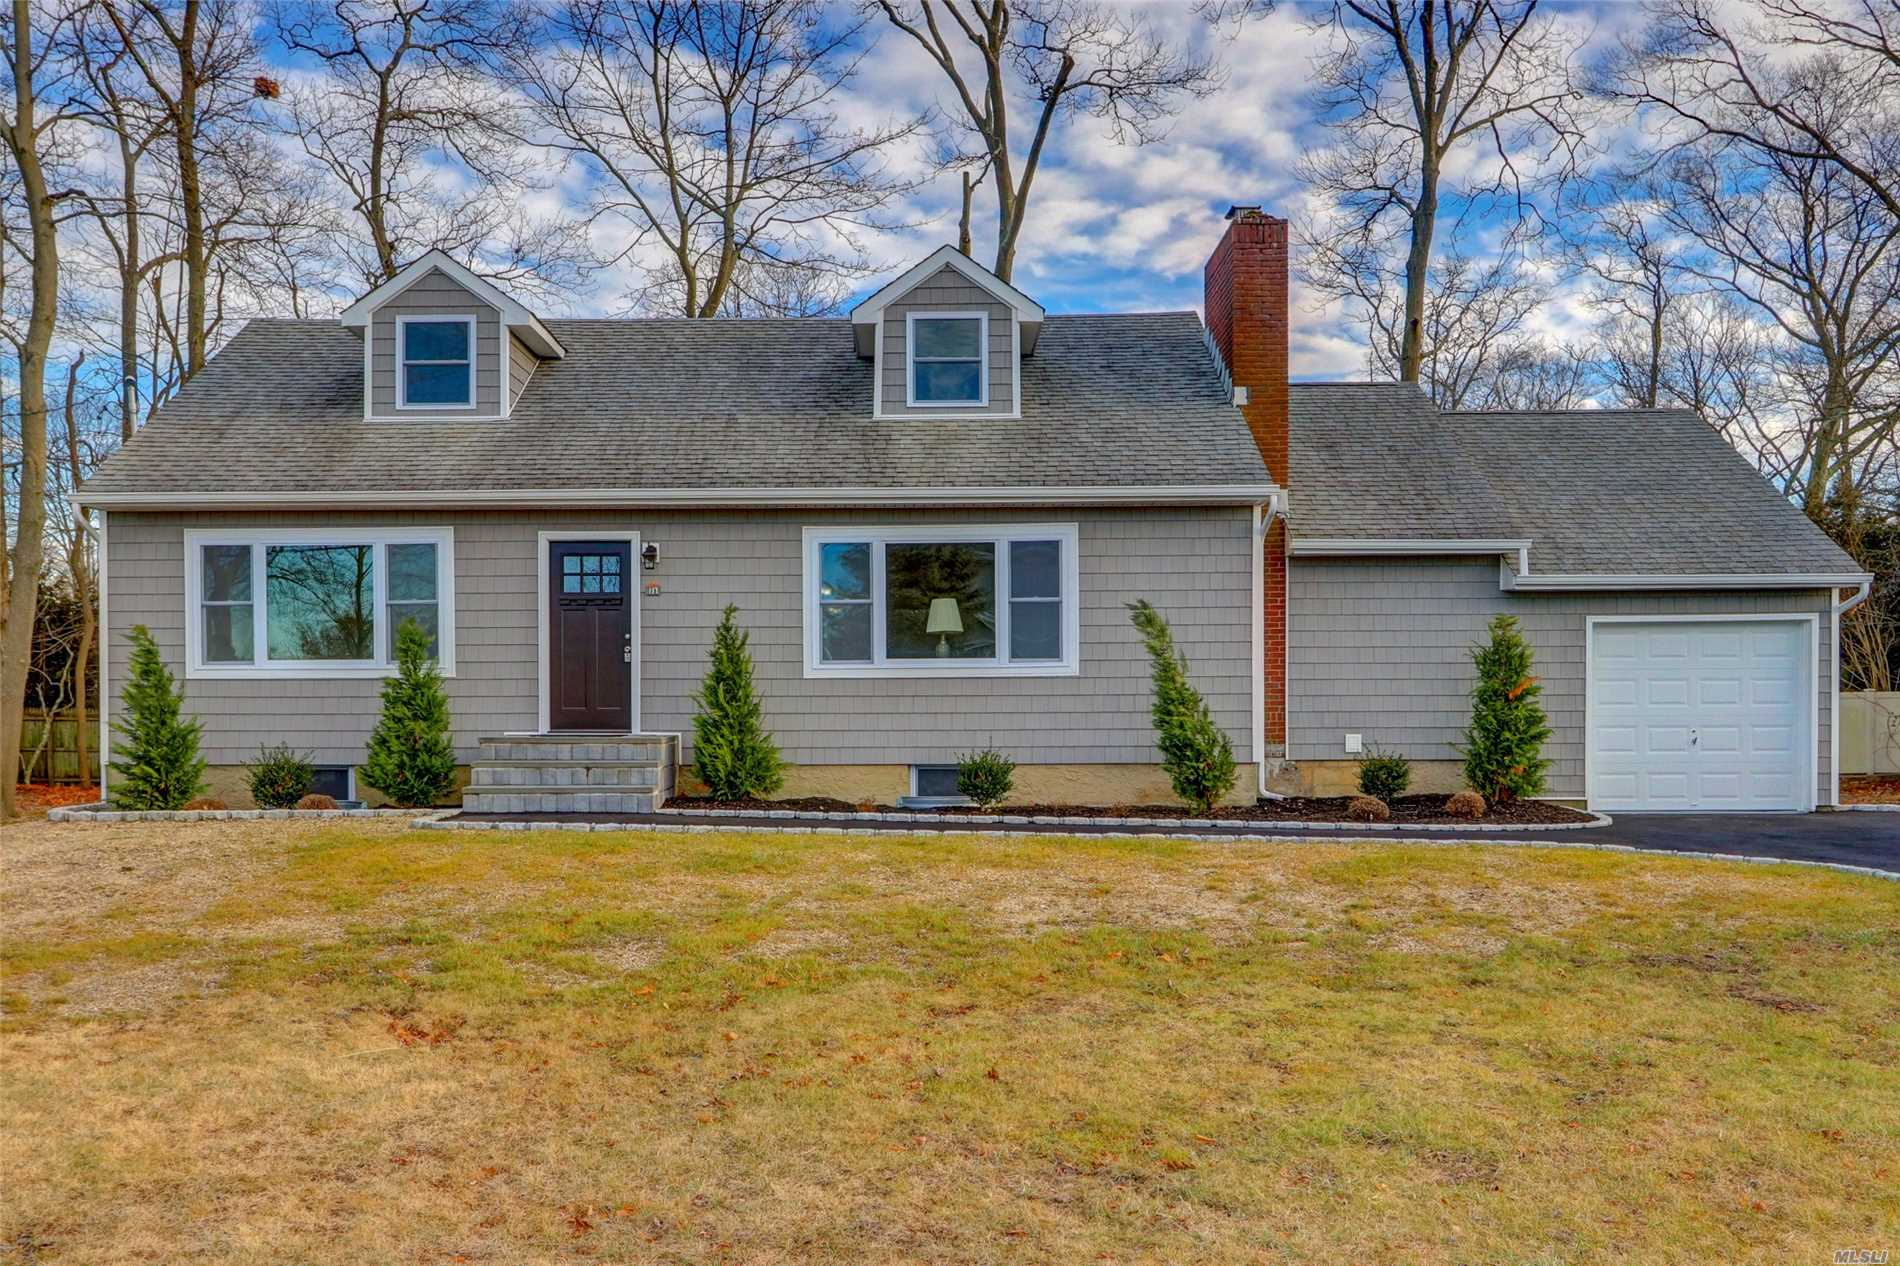 Connetquot Schools , Low Taxes House Has Been Renovated .Updated 2 Bathrooms, Hardwood Throughout , Hihats, New Ss Appliances, 200 Amps, New Driveway, Electric Garage Opener, Does Not Require Flood Insurance. Must See!